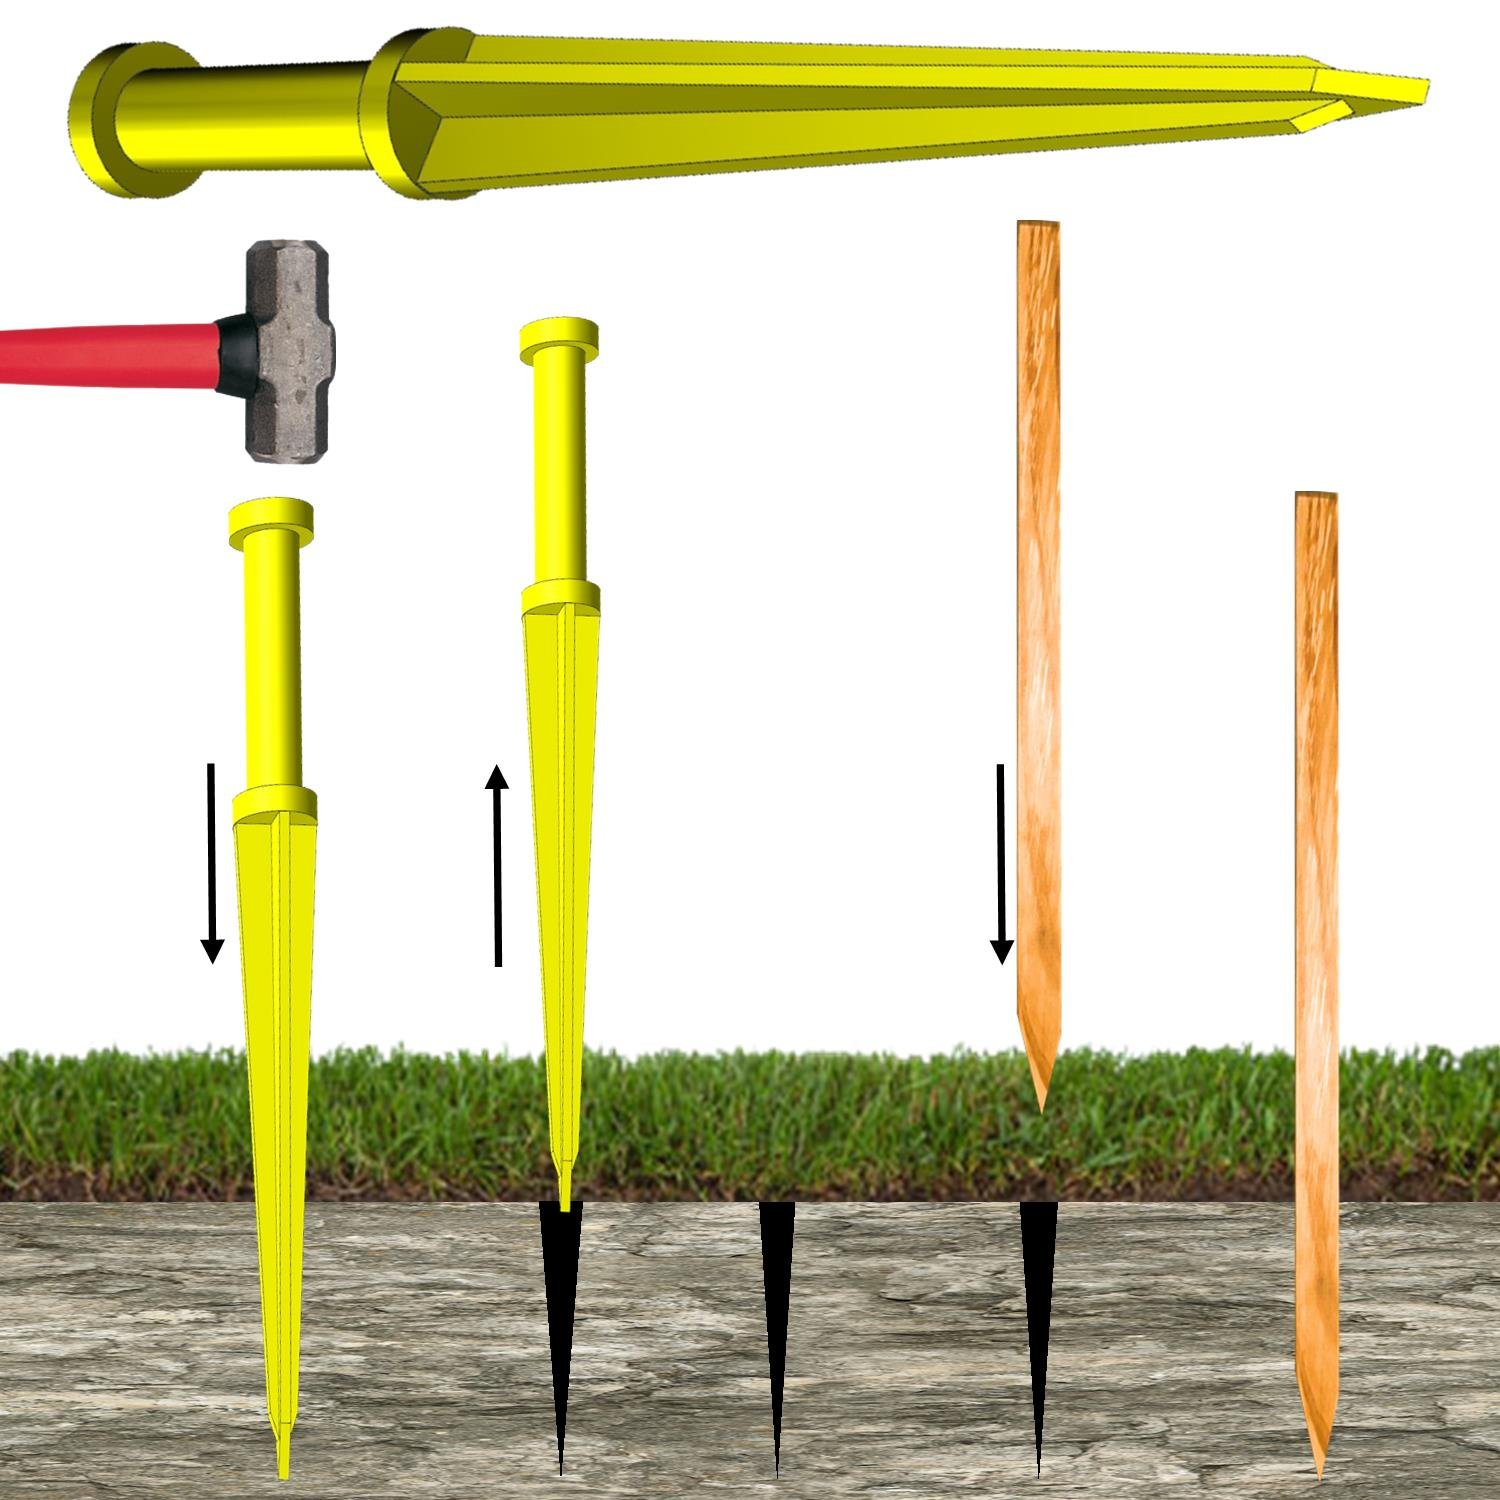 KEYFIT Tools Land Staker Make Perfectly Straight Pilot Holes in Tough Ground Rocks Hardpan Clay for Wood Stakes, Bamboo Stakes, Garden Stakes, Grading Stakes, Survey Stakes, Tent Stakes, Wood Lath,